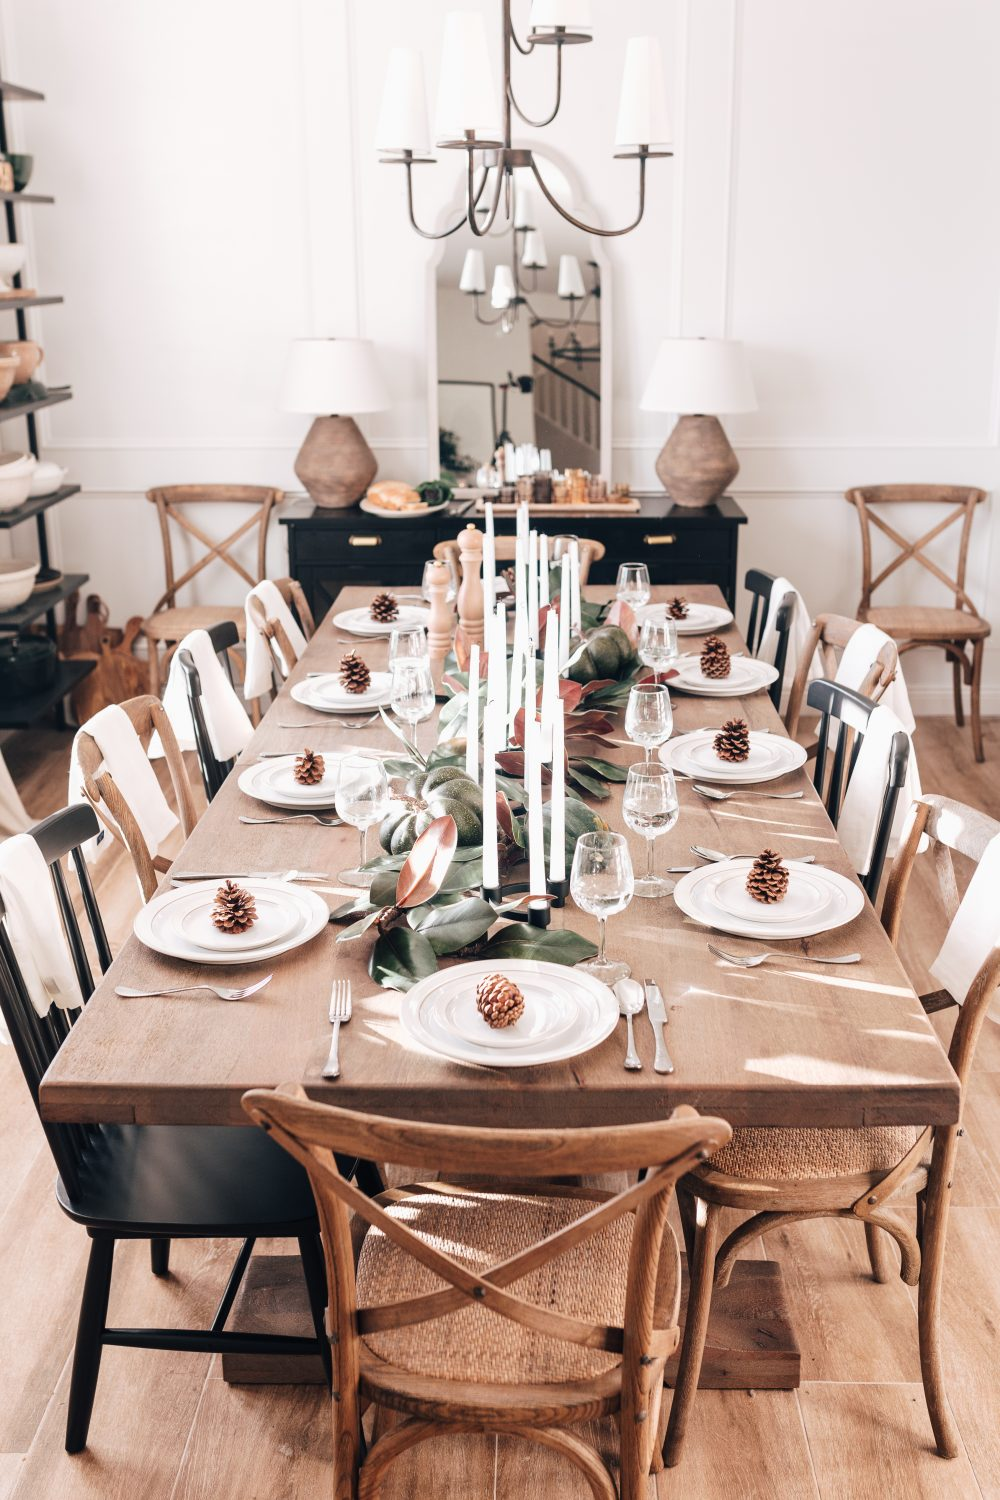 How to set up a Friendsgiving Table